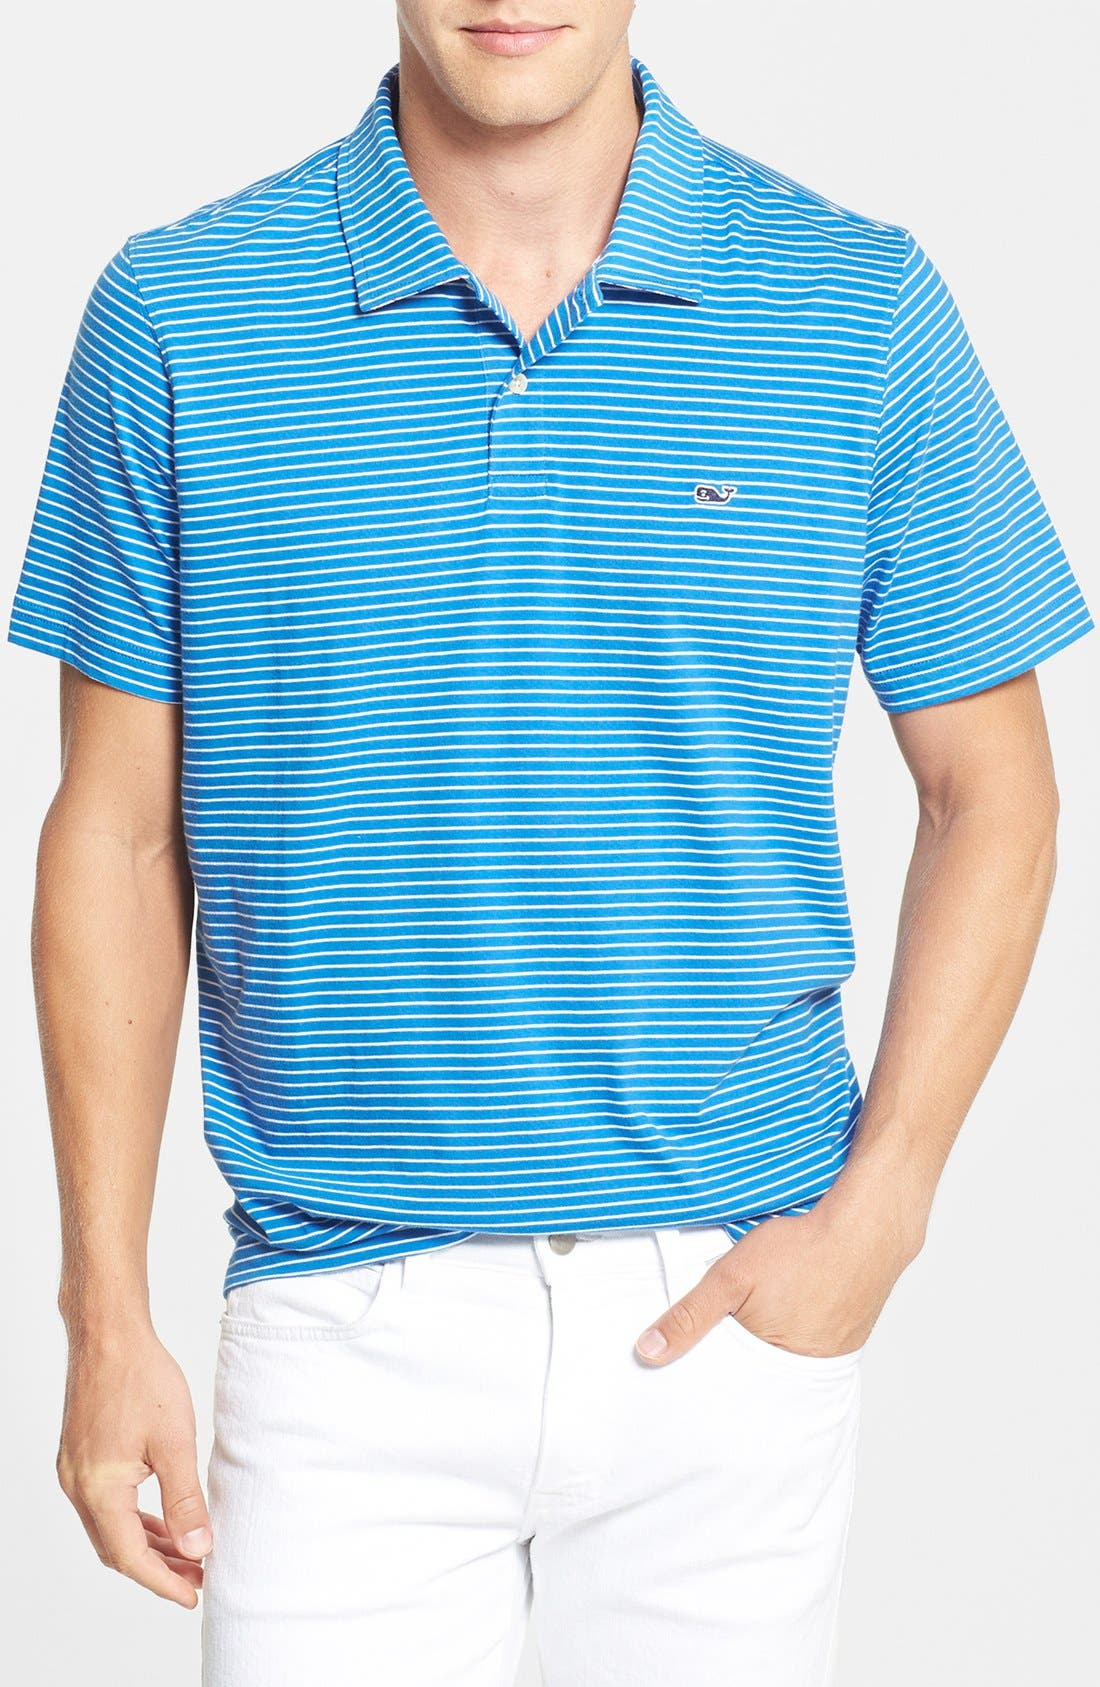 Main Image - Vineyard Vines 'Rigsby' Stripe Jersey Polo